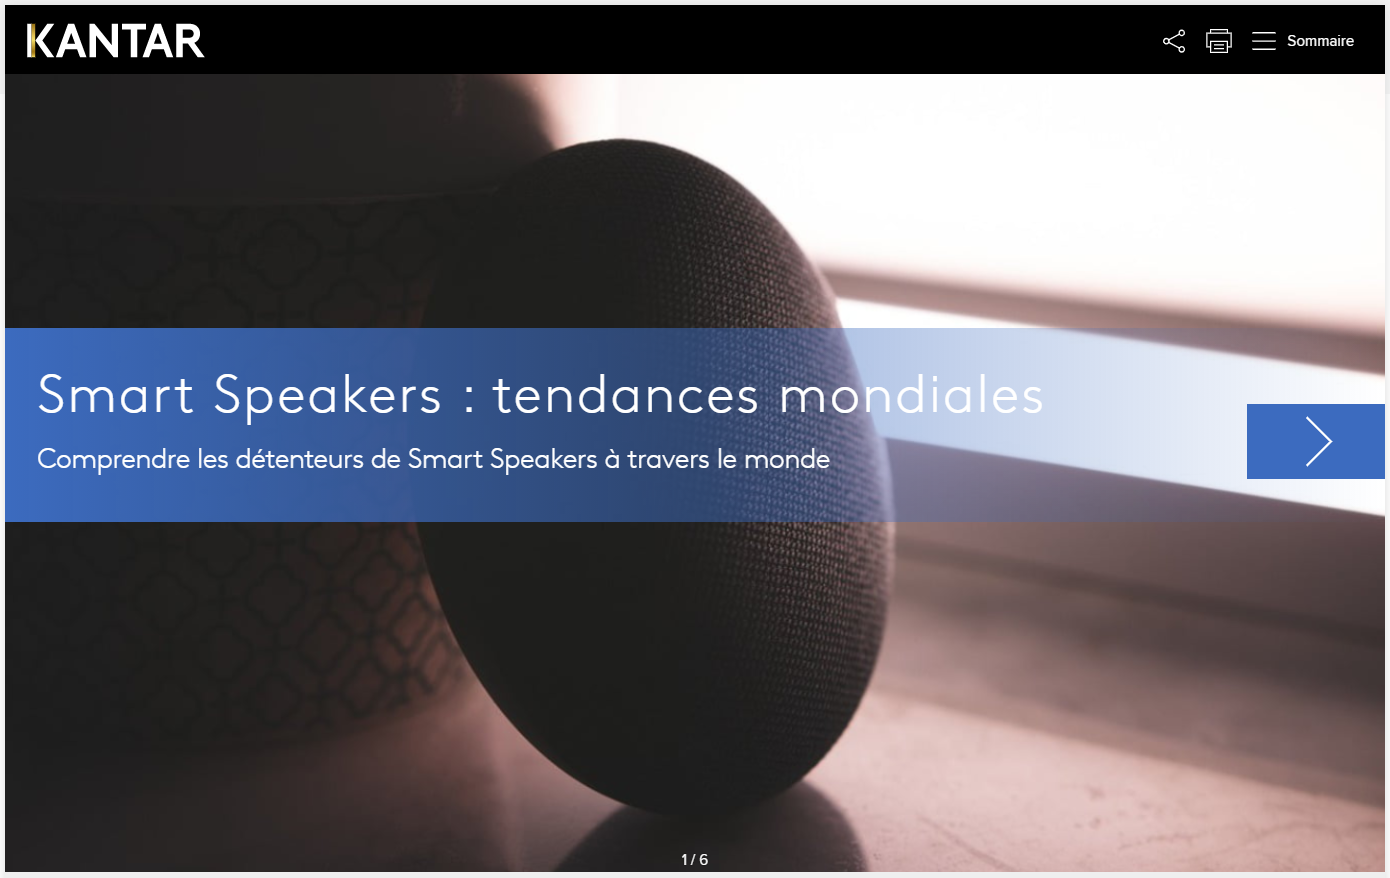 smart speakers tendances mondiales